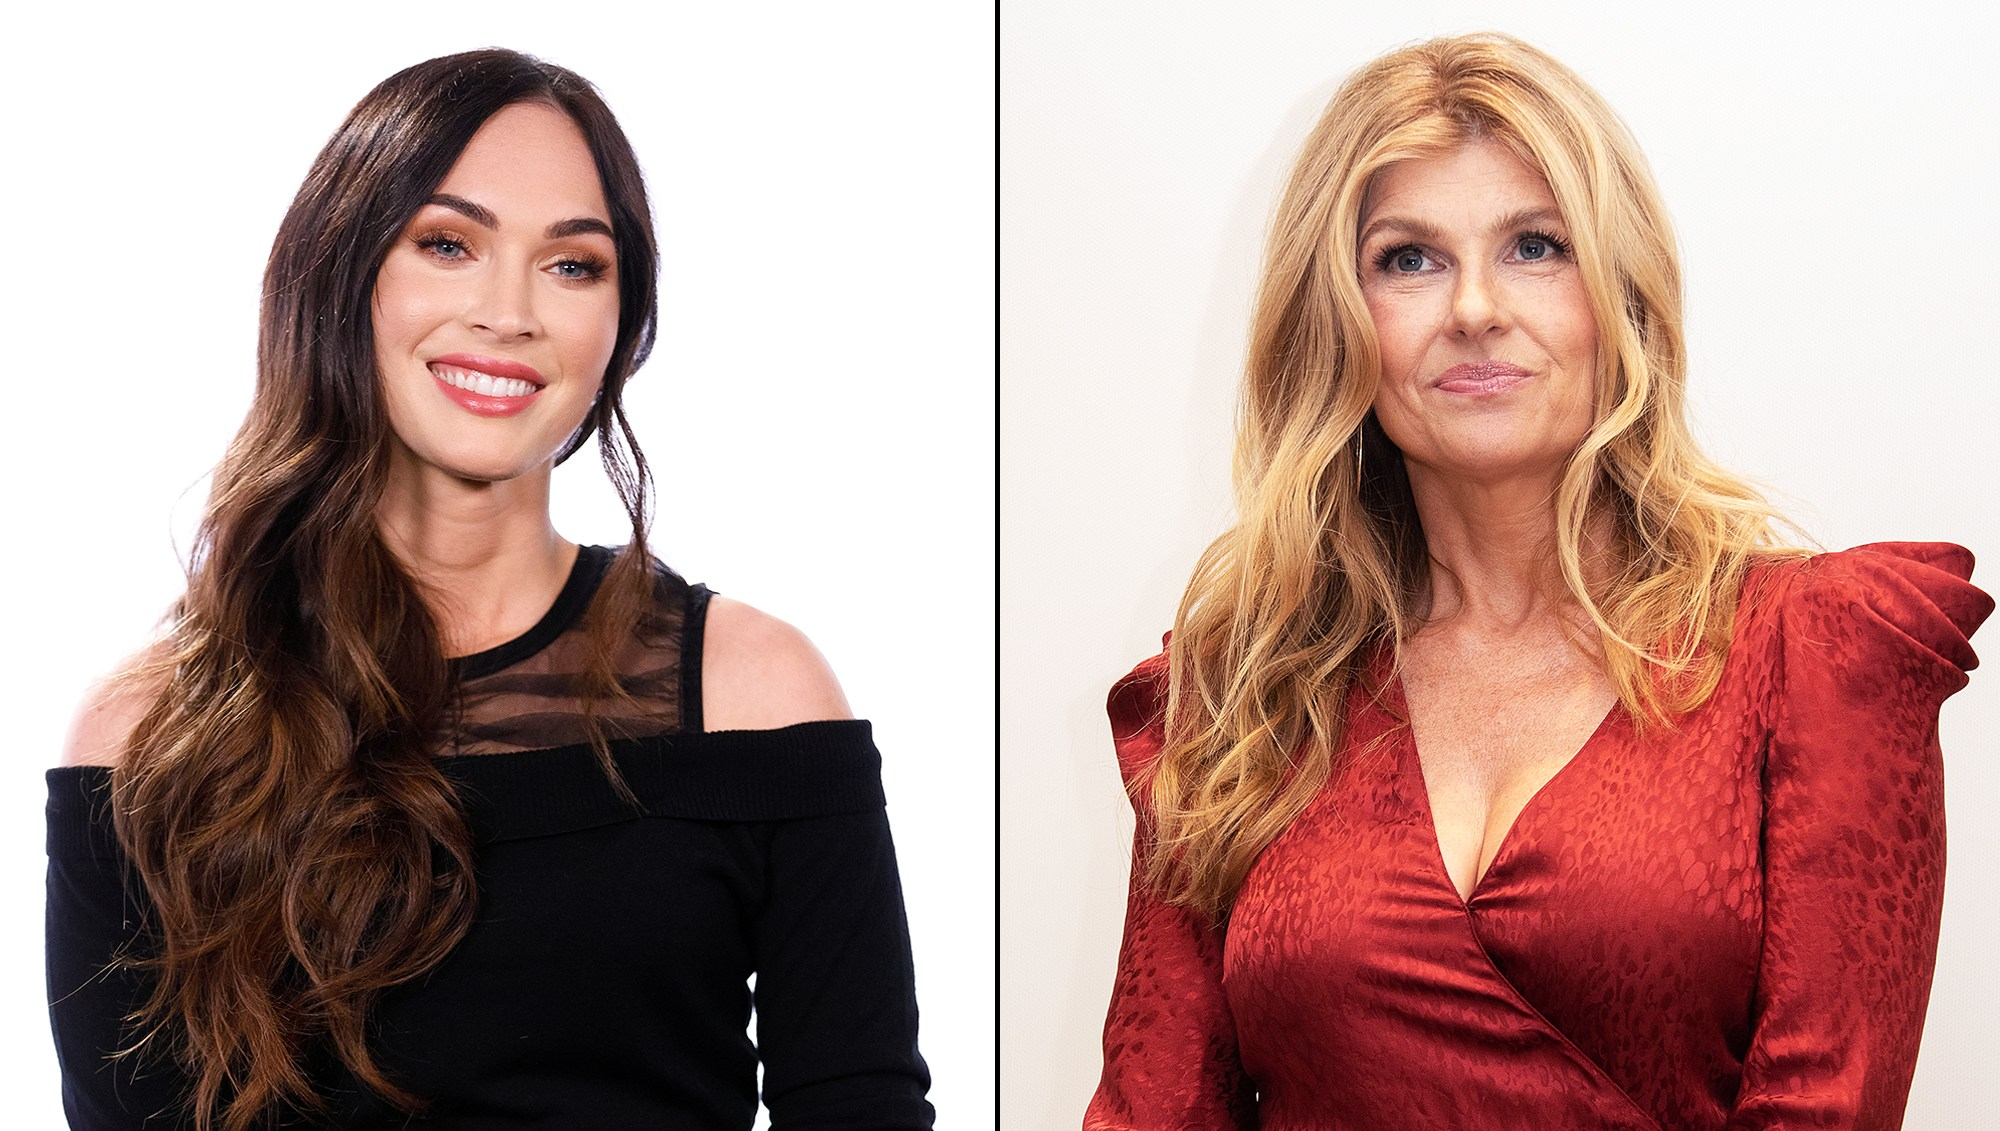 Stars Who Swear by Meditation: Megan Fox, Connie Britton and More Explain Benefits